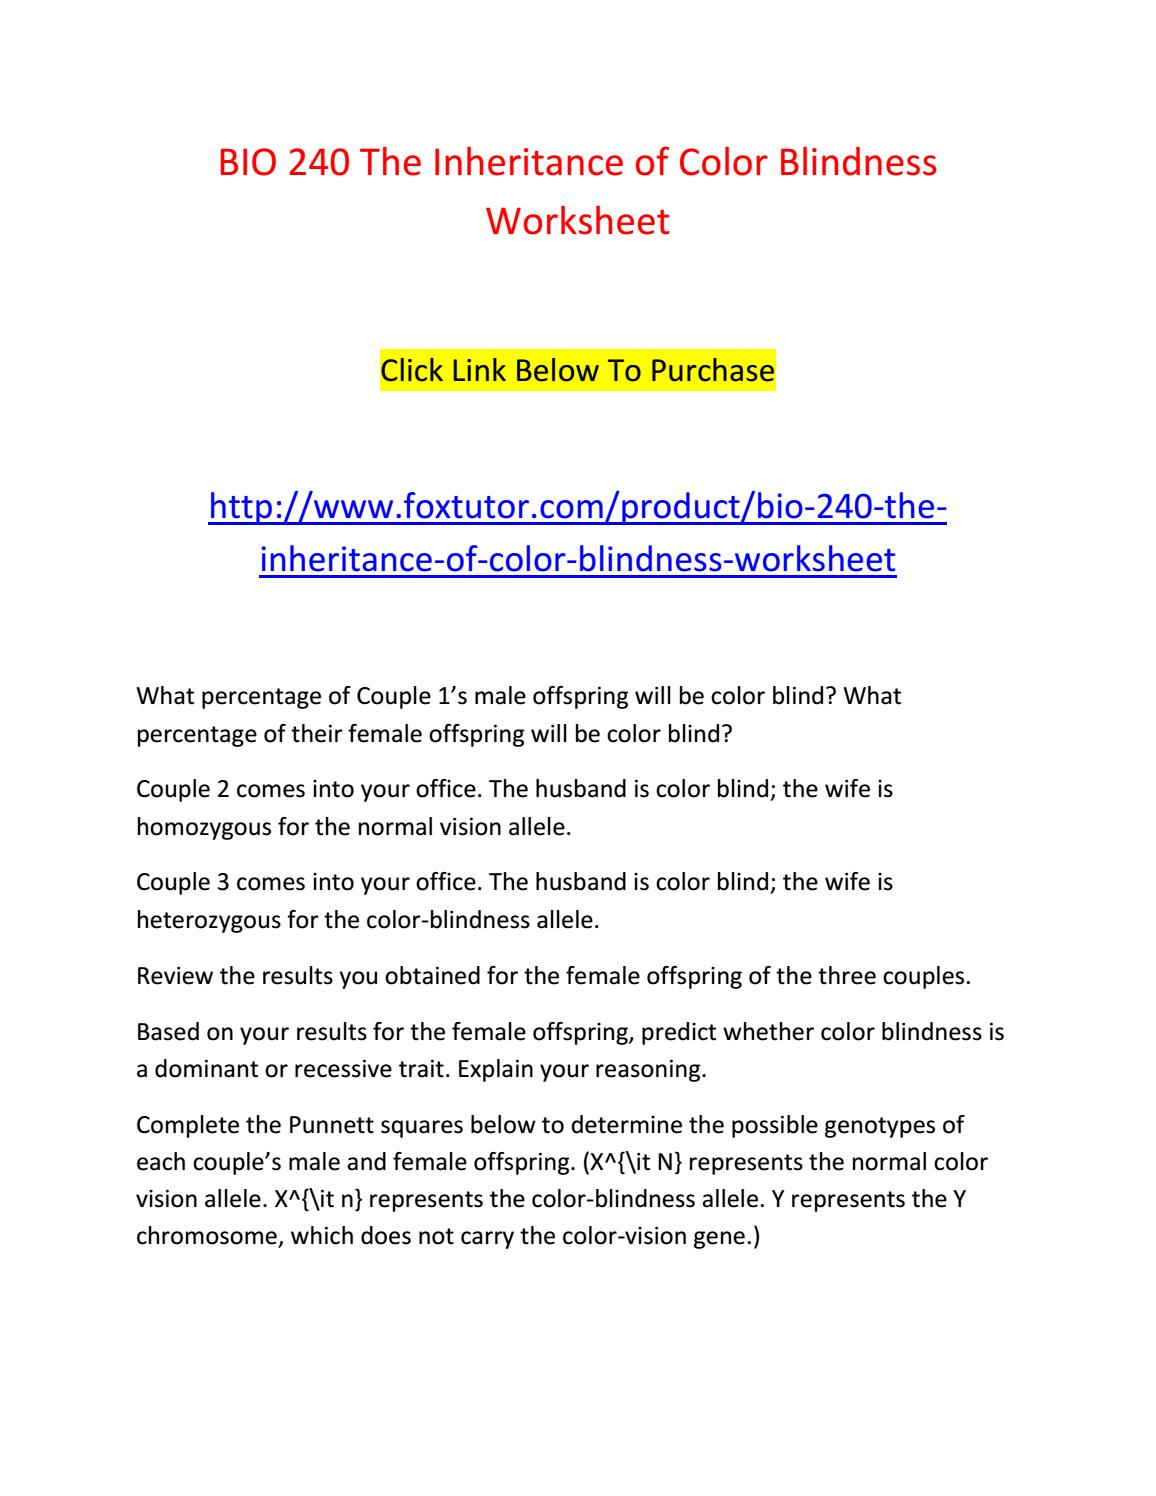 Bio 240 the inheritance of color blindness worksheet by bio240ft